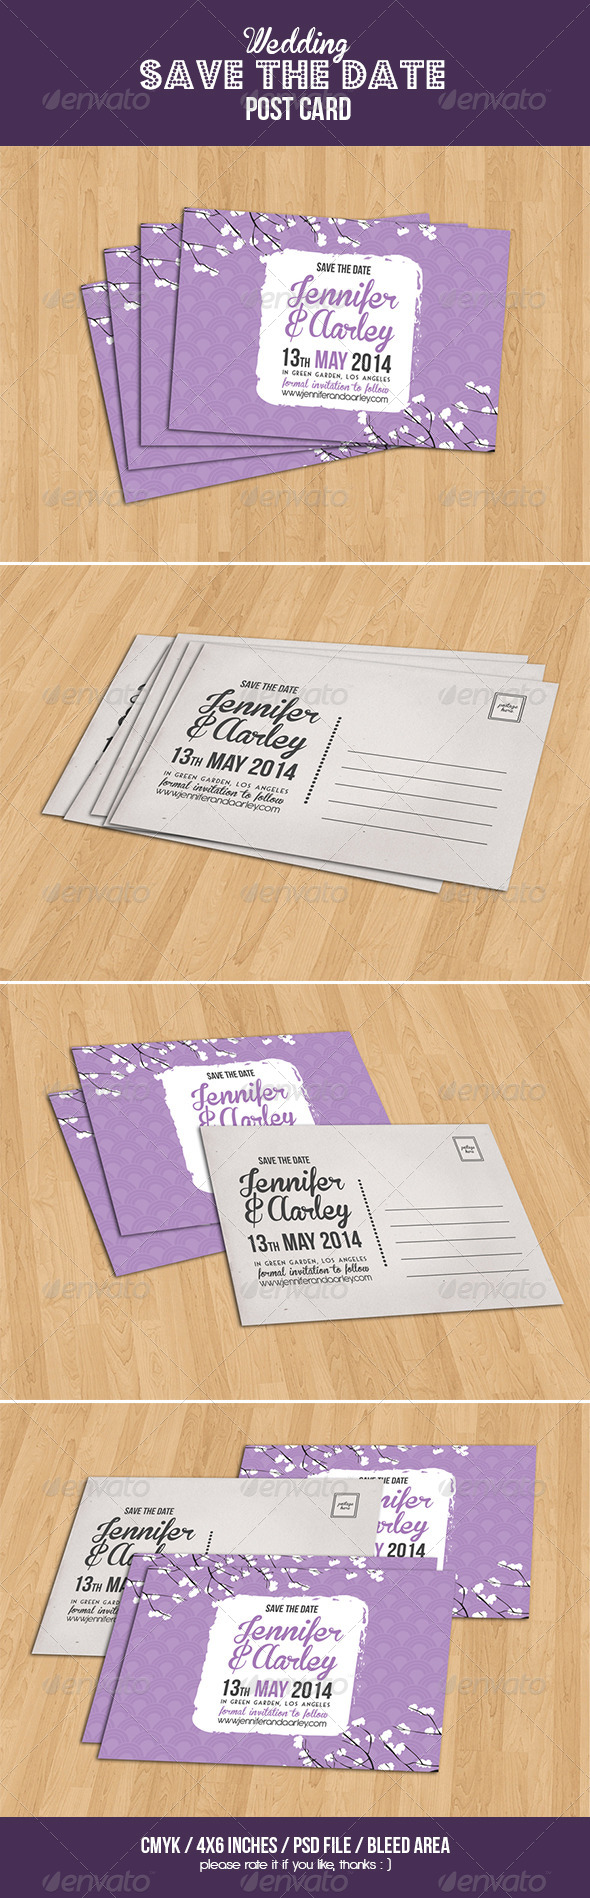 GraphicRiver Wedding Invitation Post Card 6582074